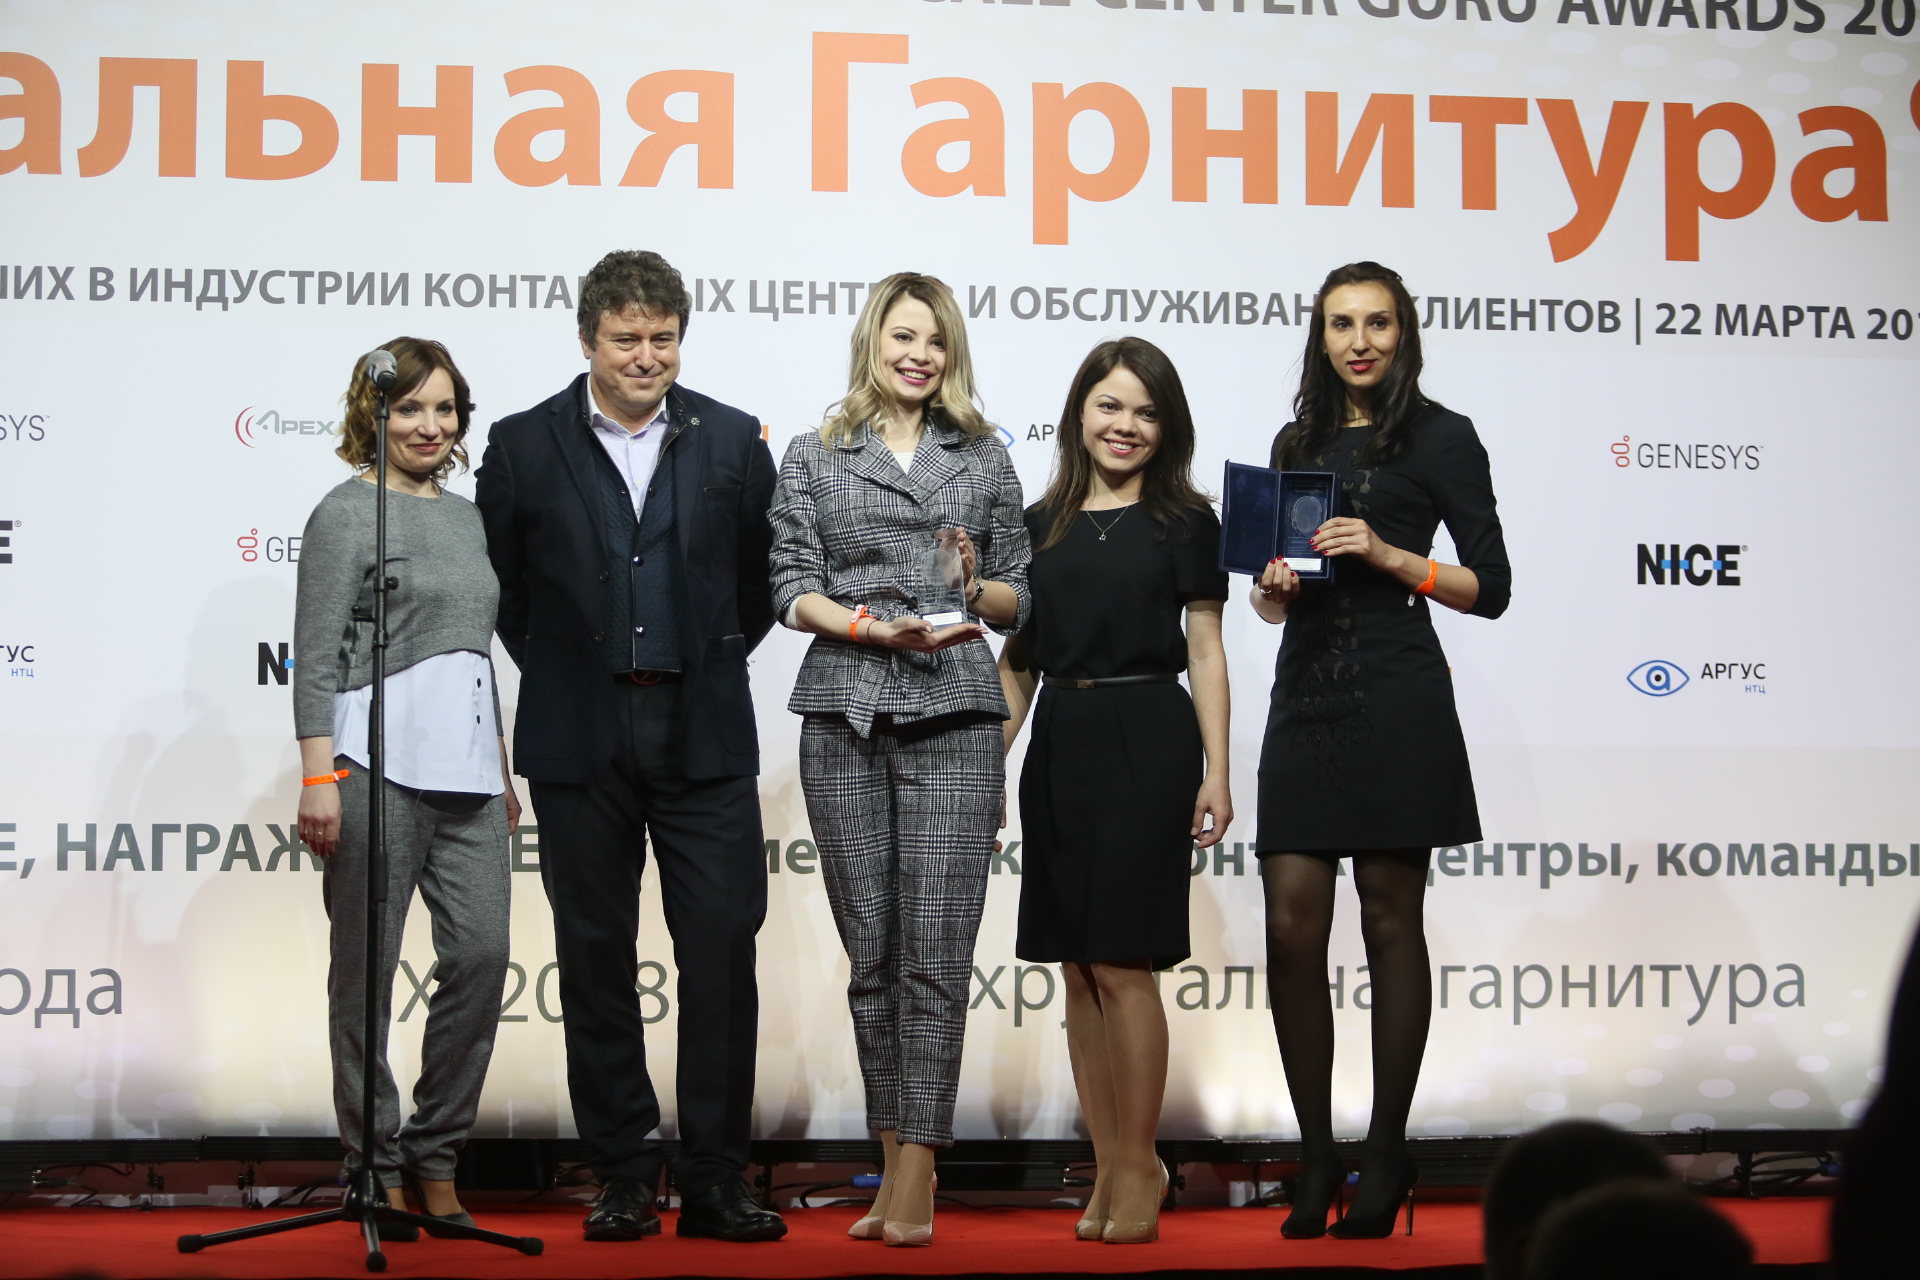 FLEETCOR Russia's Development and Customer Support team came 2nd place in the 'Best Small Team' category.